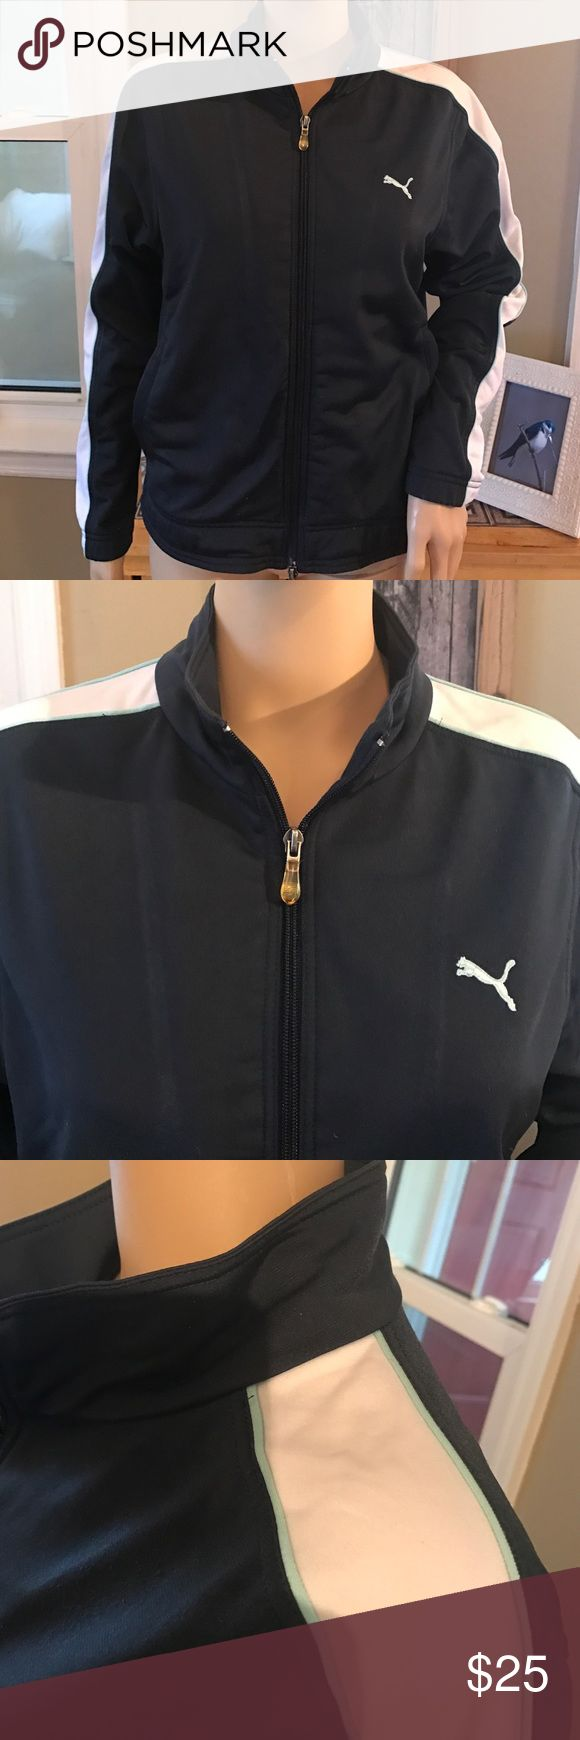 Puma zip up jacket Navy jacket with powder blue and white as accent colors.  Size says medium, it fits like a small-medium.  Love this! Puma Tops Sweatshirts & Hoodies